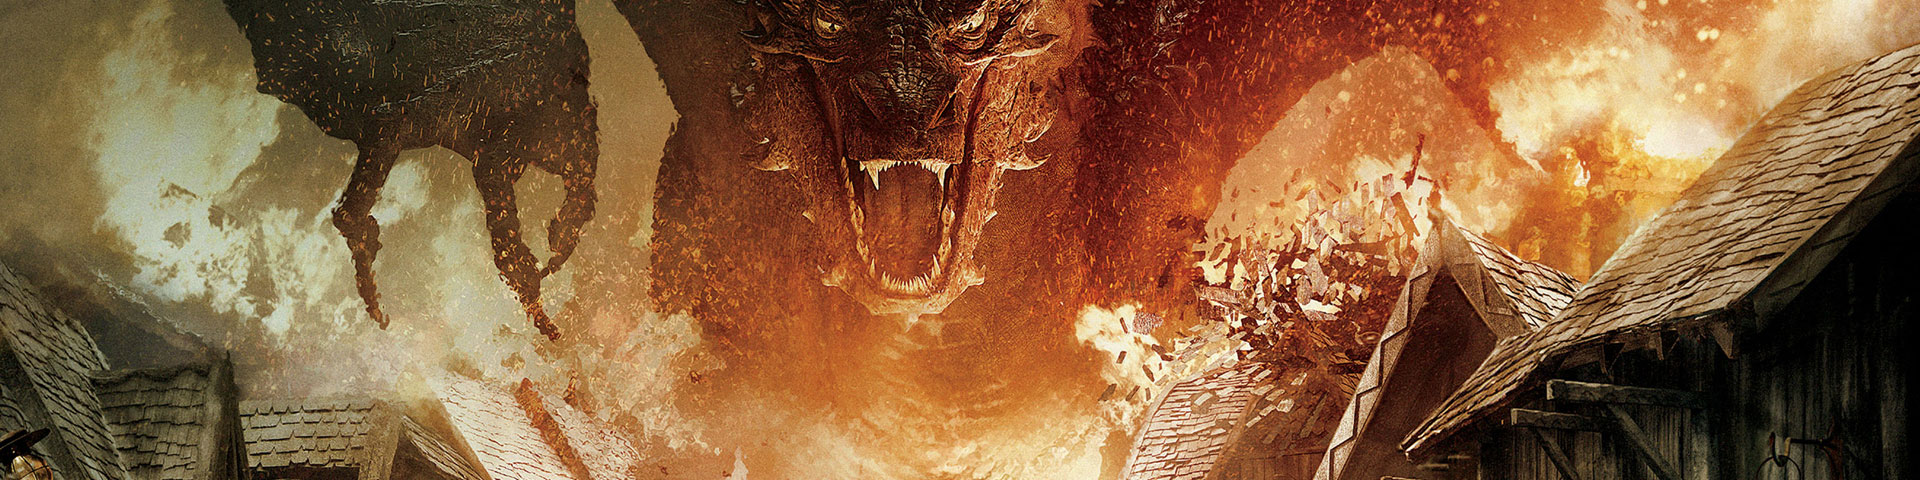 A red dragon looms menacingly over a burning medieval town.